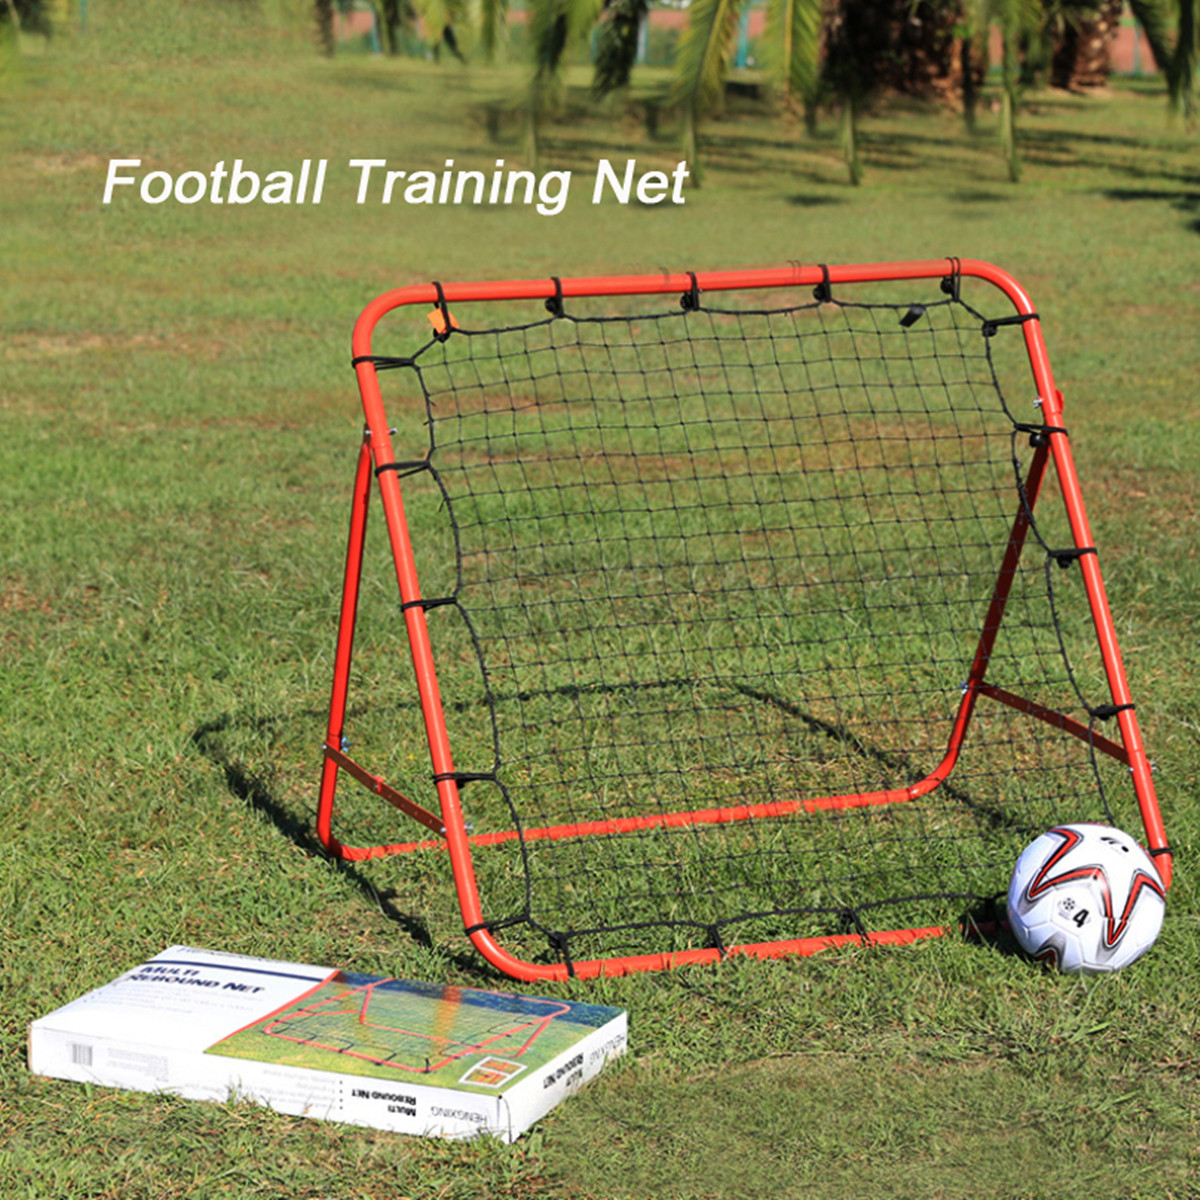 Football Soccer Baseball Rebound Target Mesh Net Outdoor Sports Football Training Aid Soccer Ball Practice